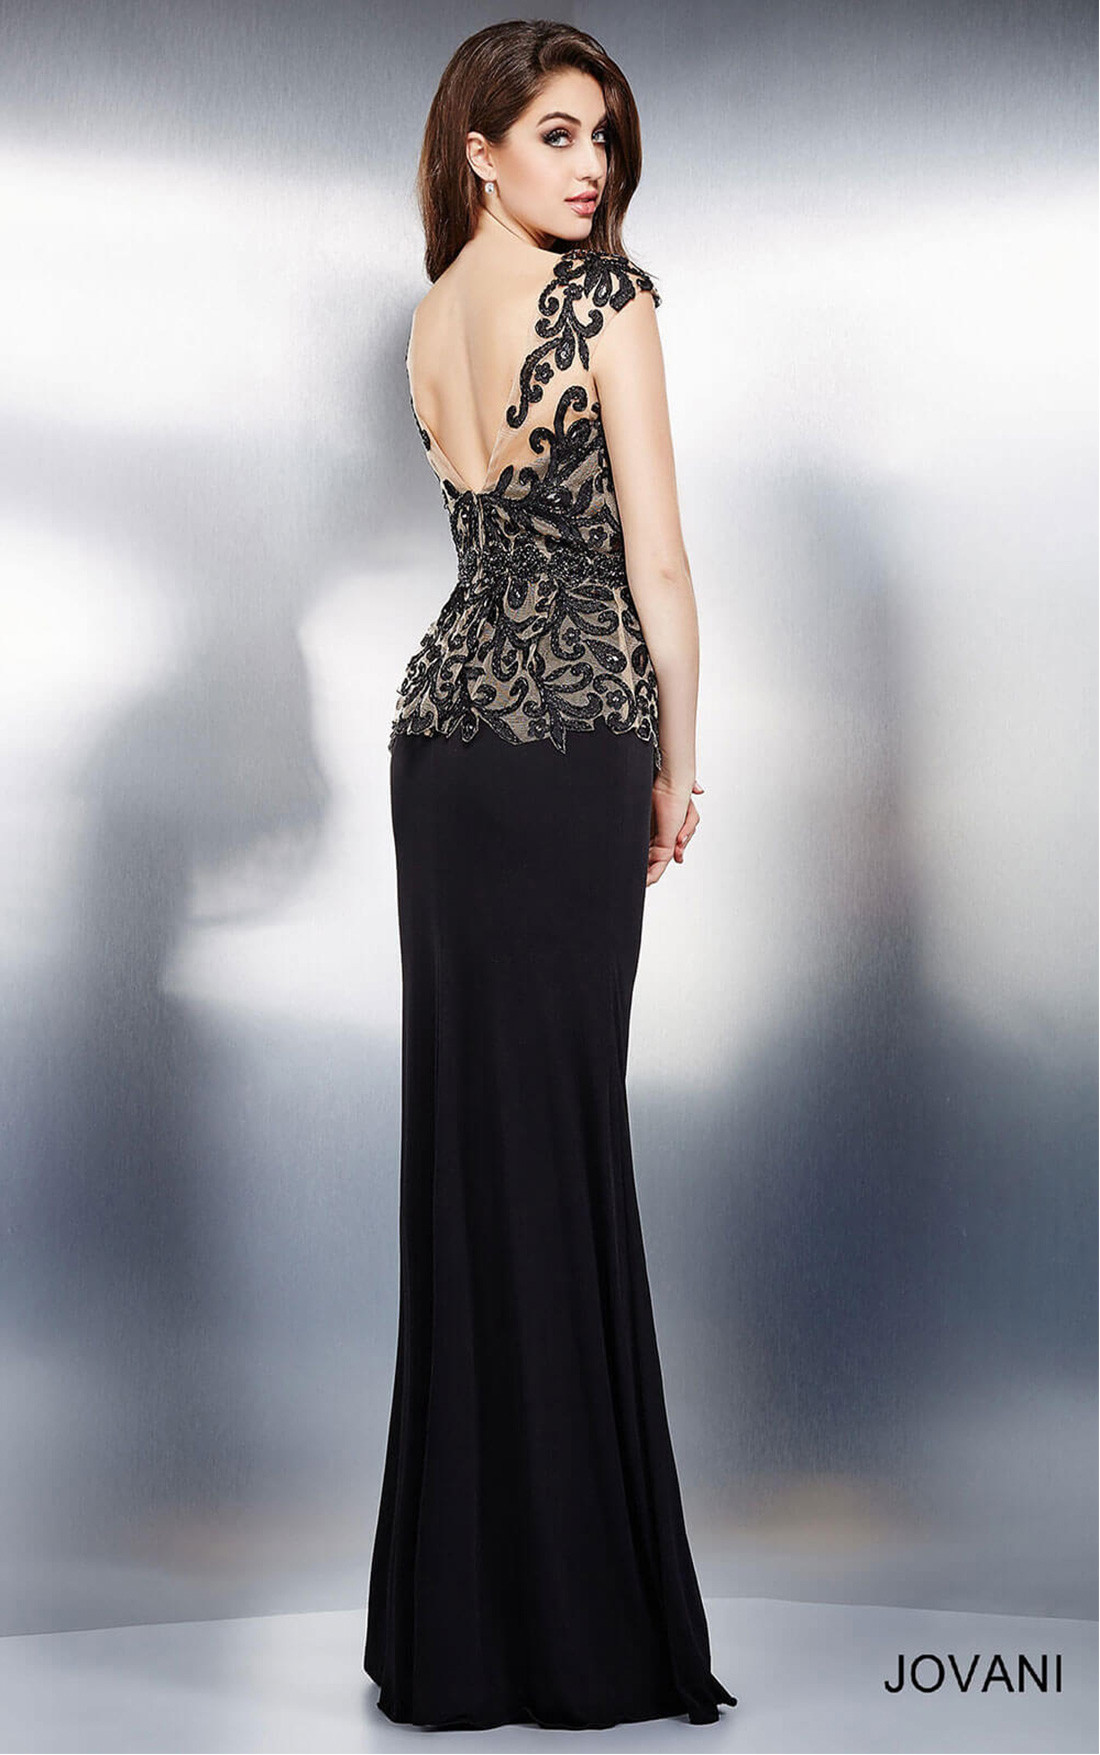 Jovani Dresses | Womens Black Cap Sleeve Evening Dress ... - photo#42